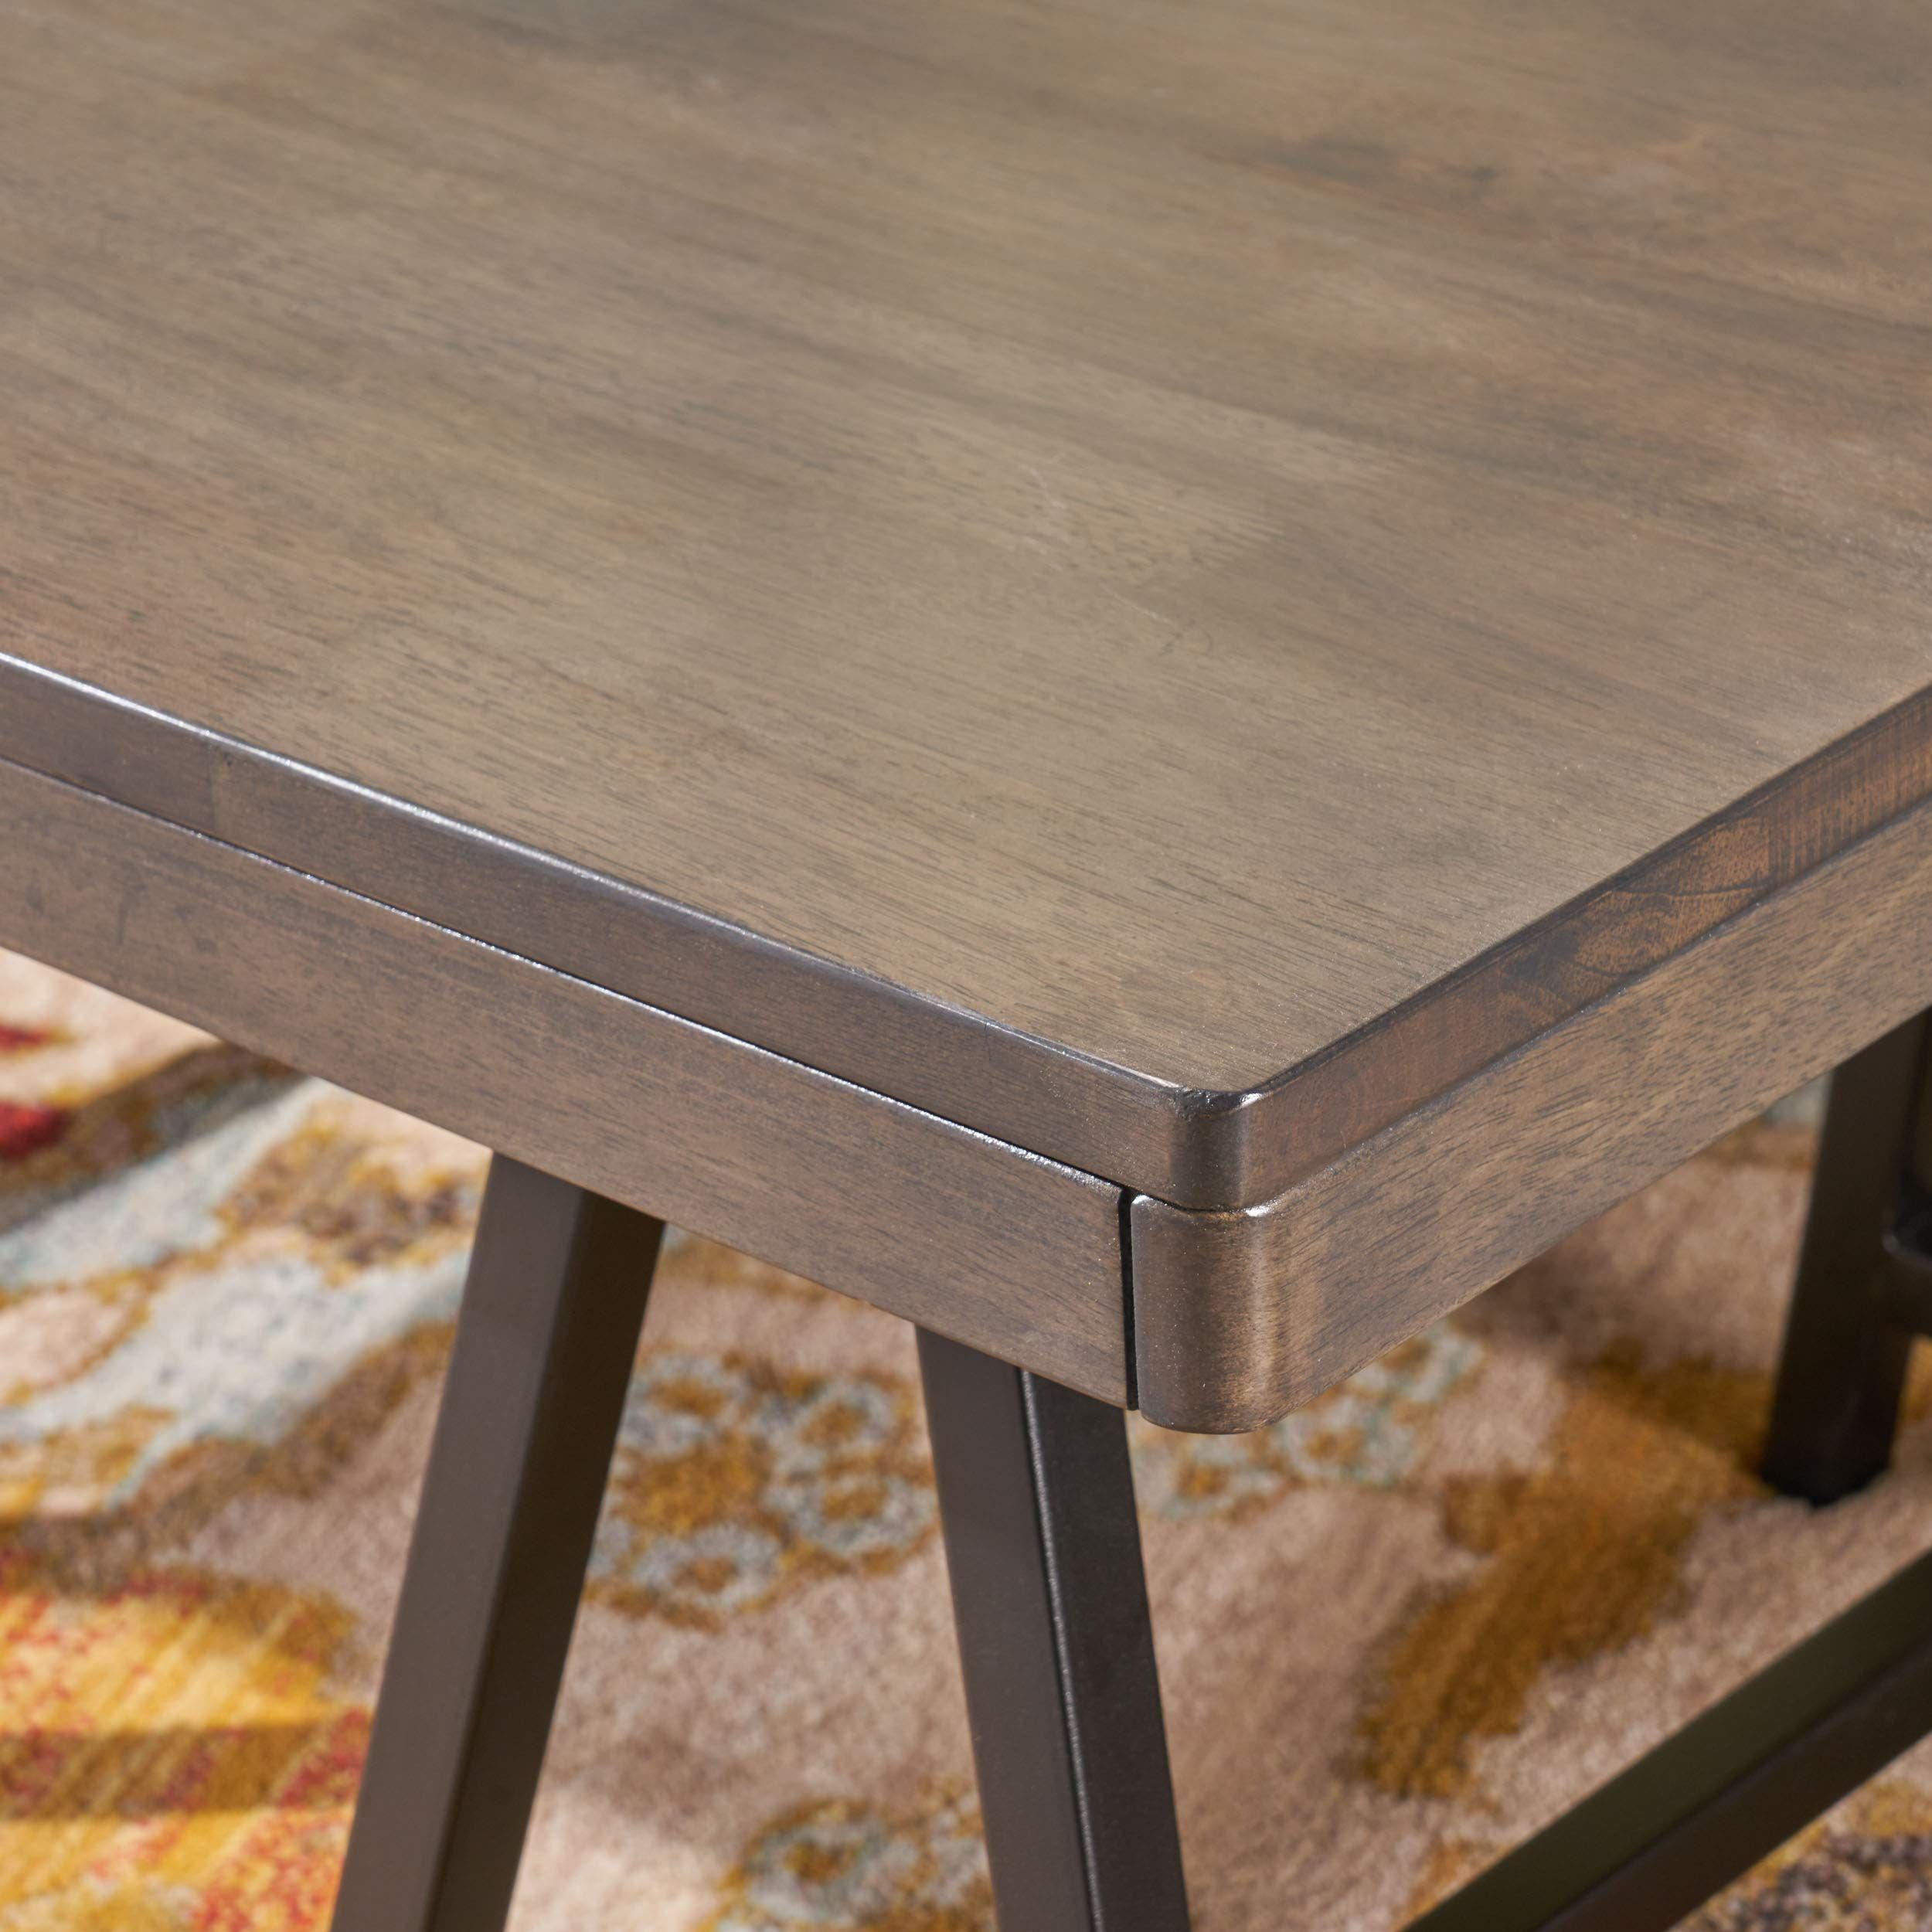 Anele Rubberwood Farmhouse Coffee Table Gray Finish Learn More At The Photo Web Link This Is An Affil Coffee Table Farmhouse Coffee Table Coffee Table Grey [ 2500 x 2500 Pixel ]